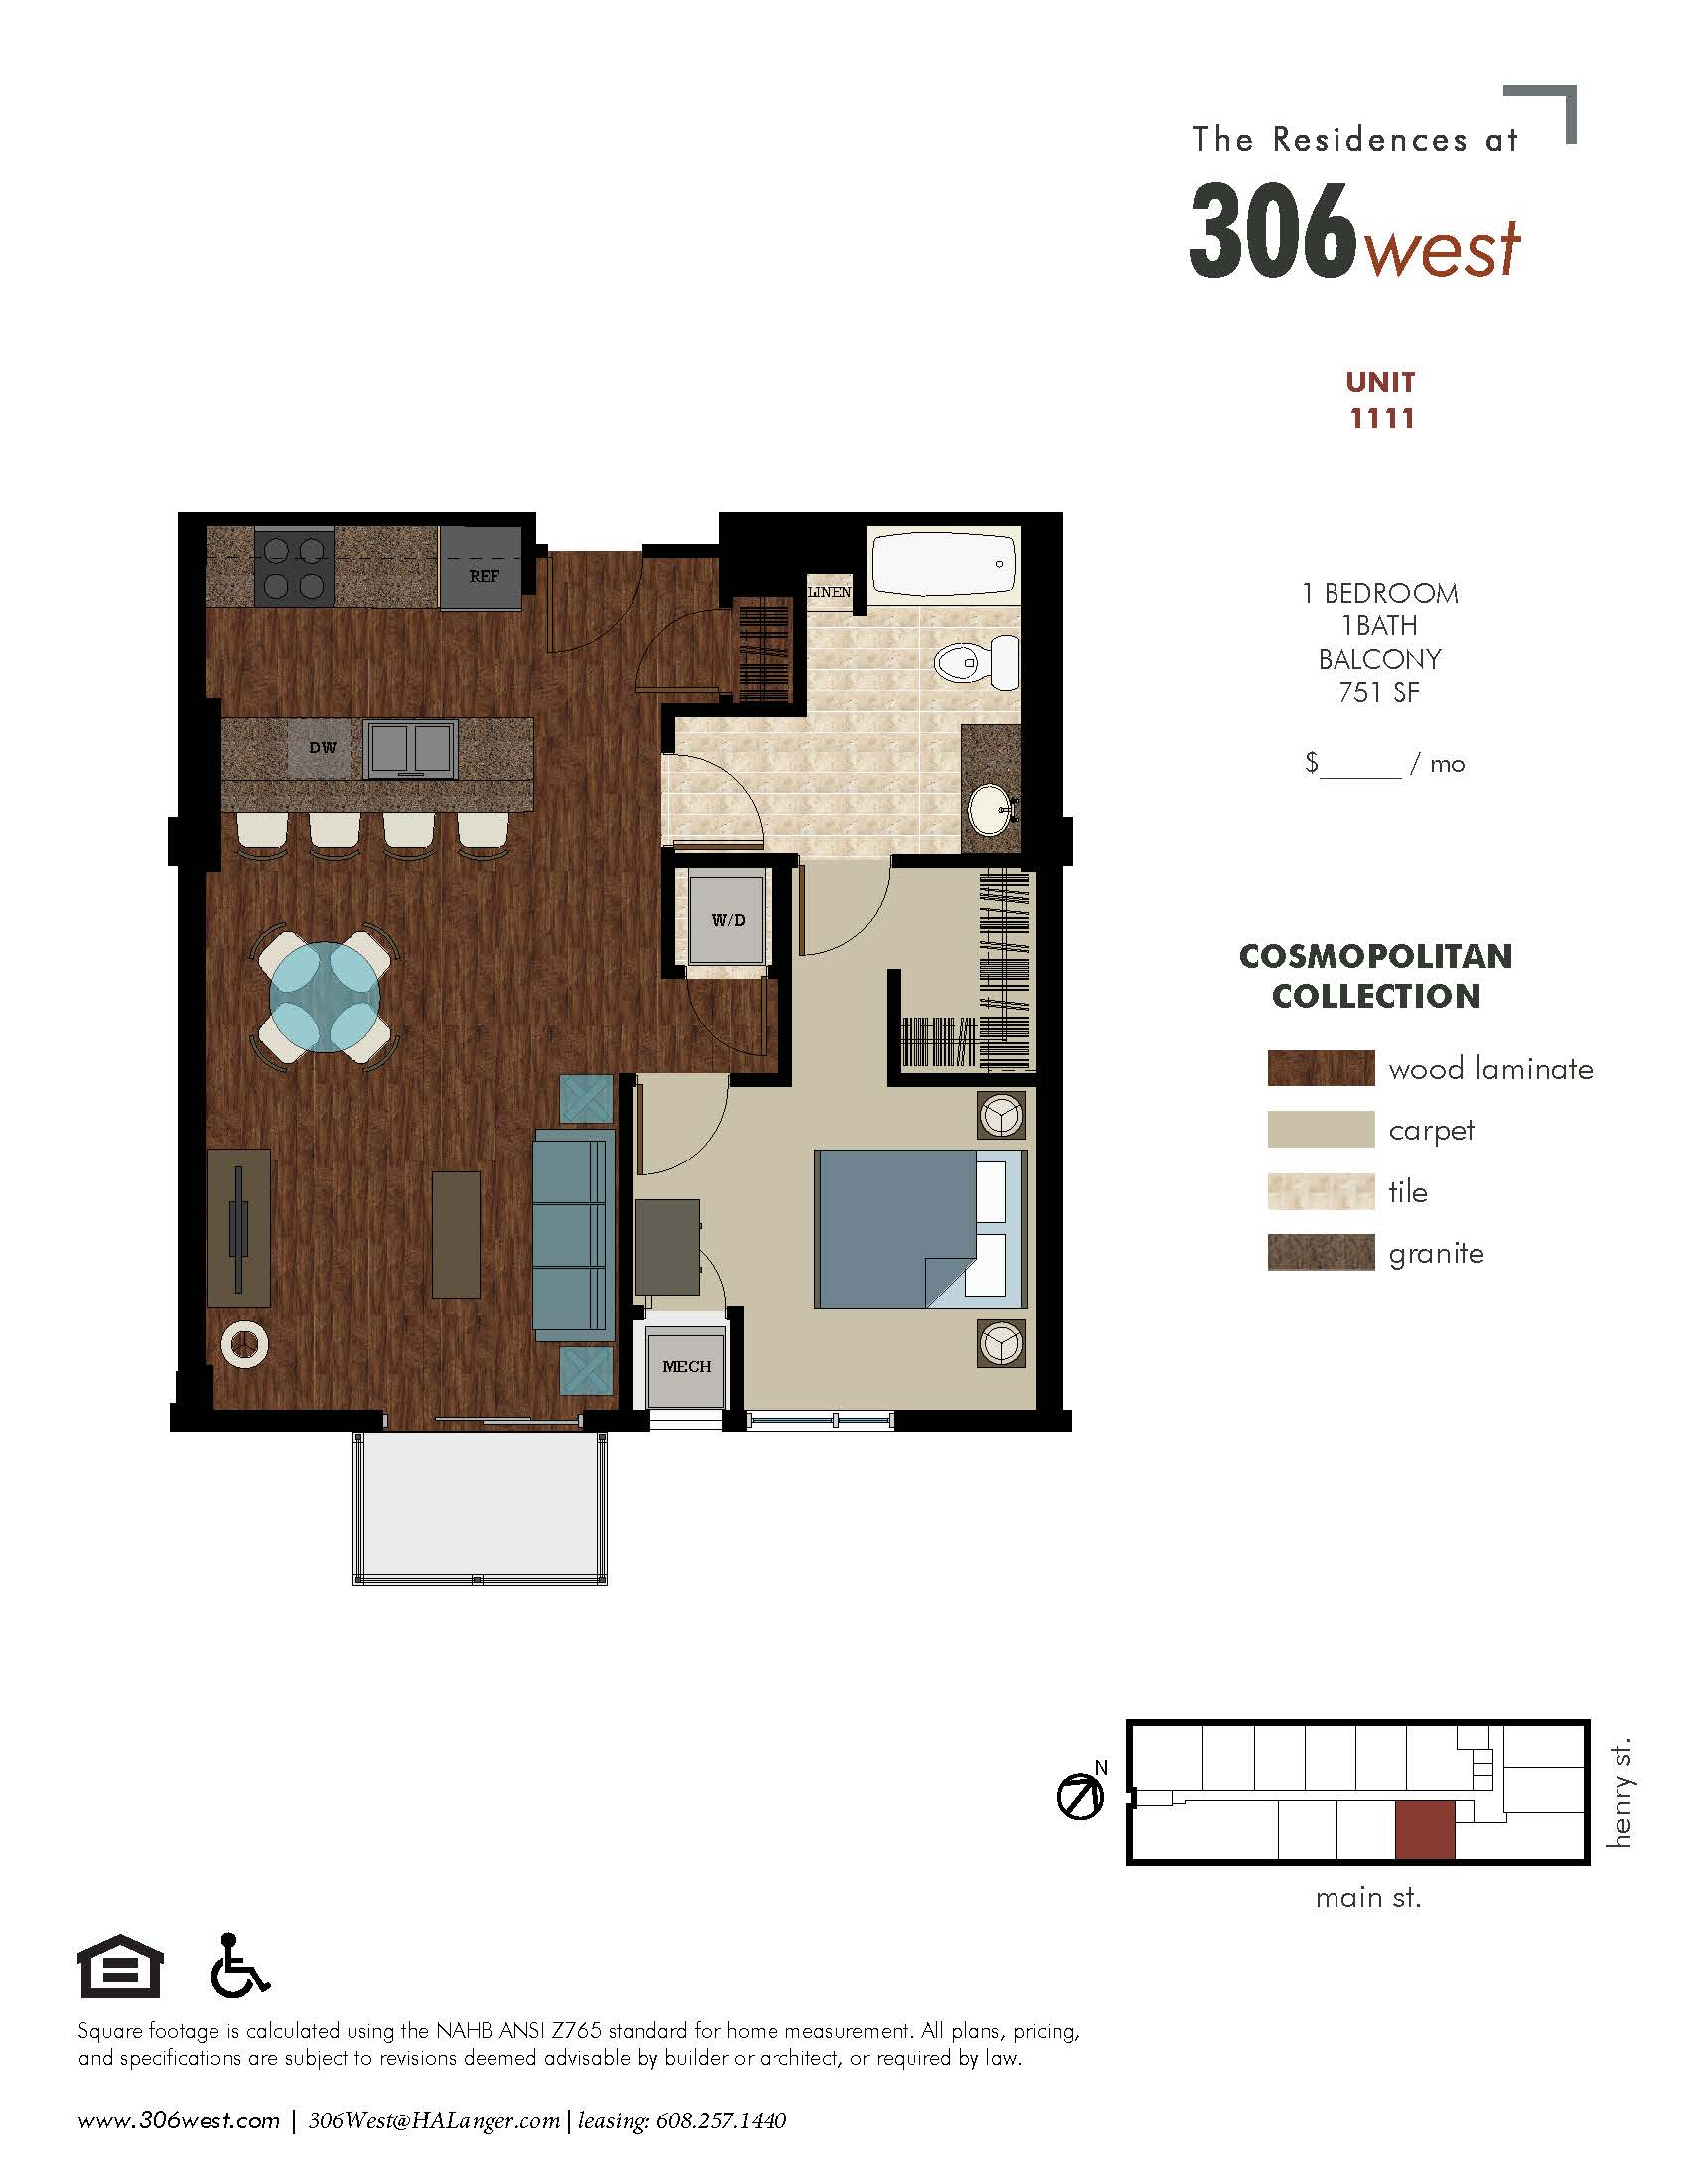 floor plans 306 west luxury apartments in downtown madison